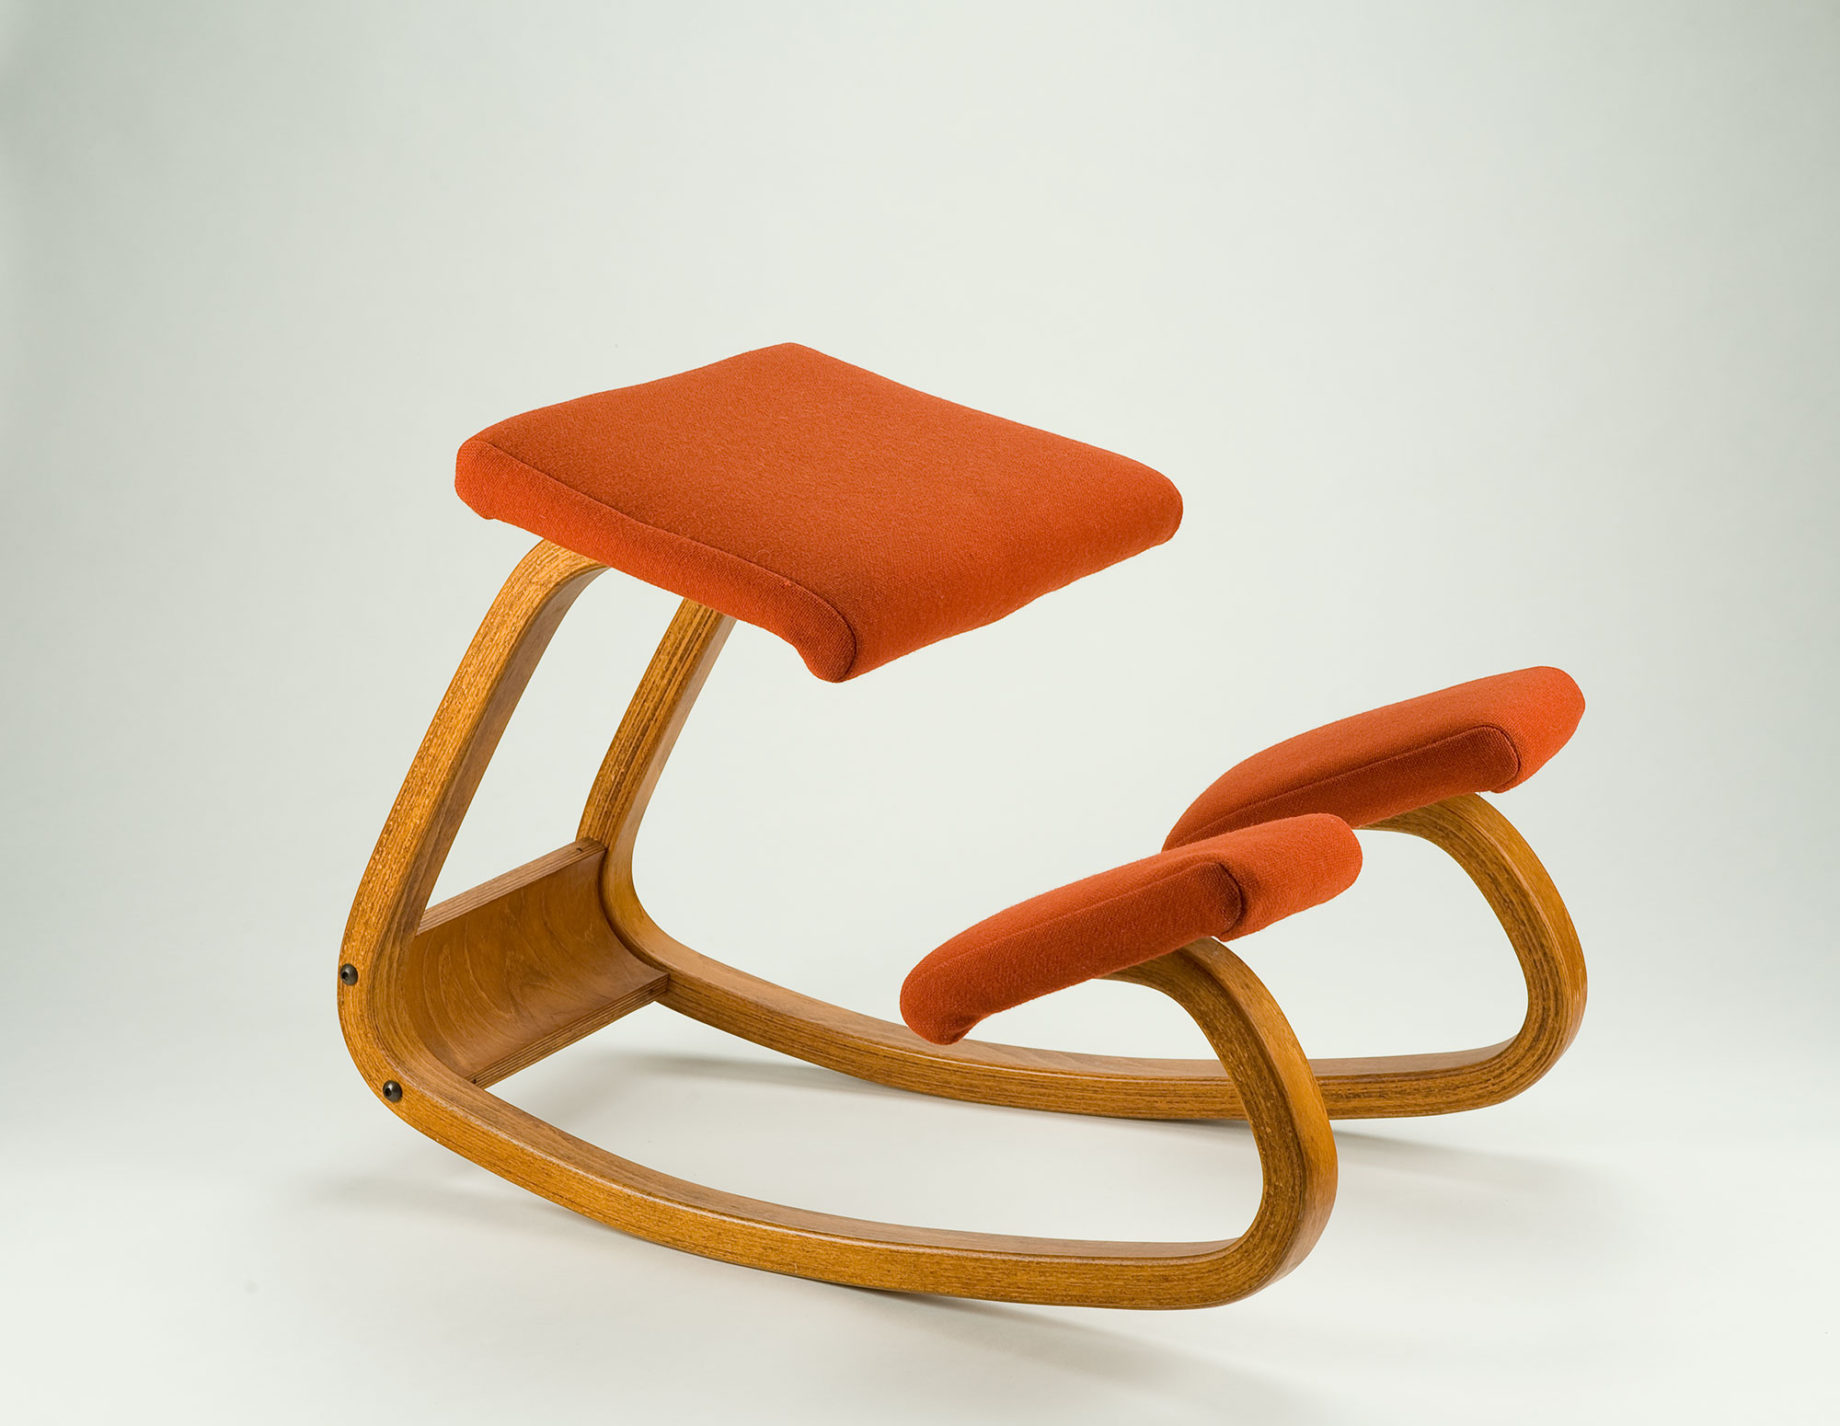 Kneeling chair with a continuous bent wood frame and cushioned seat and knee rests upholstered in orange fabric.